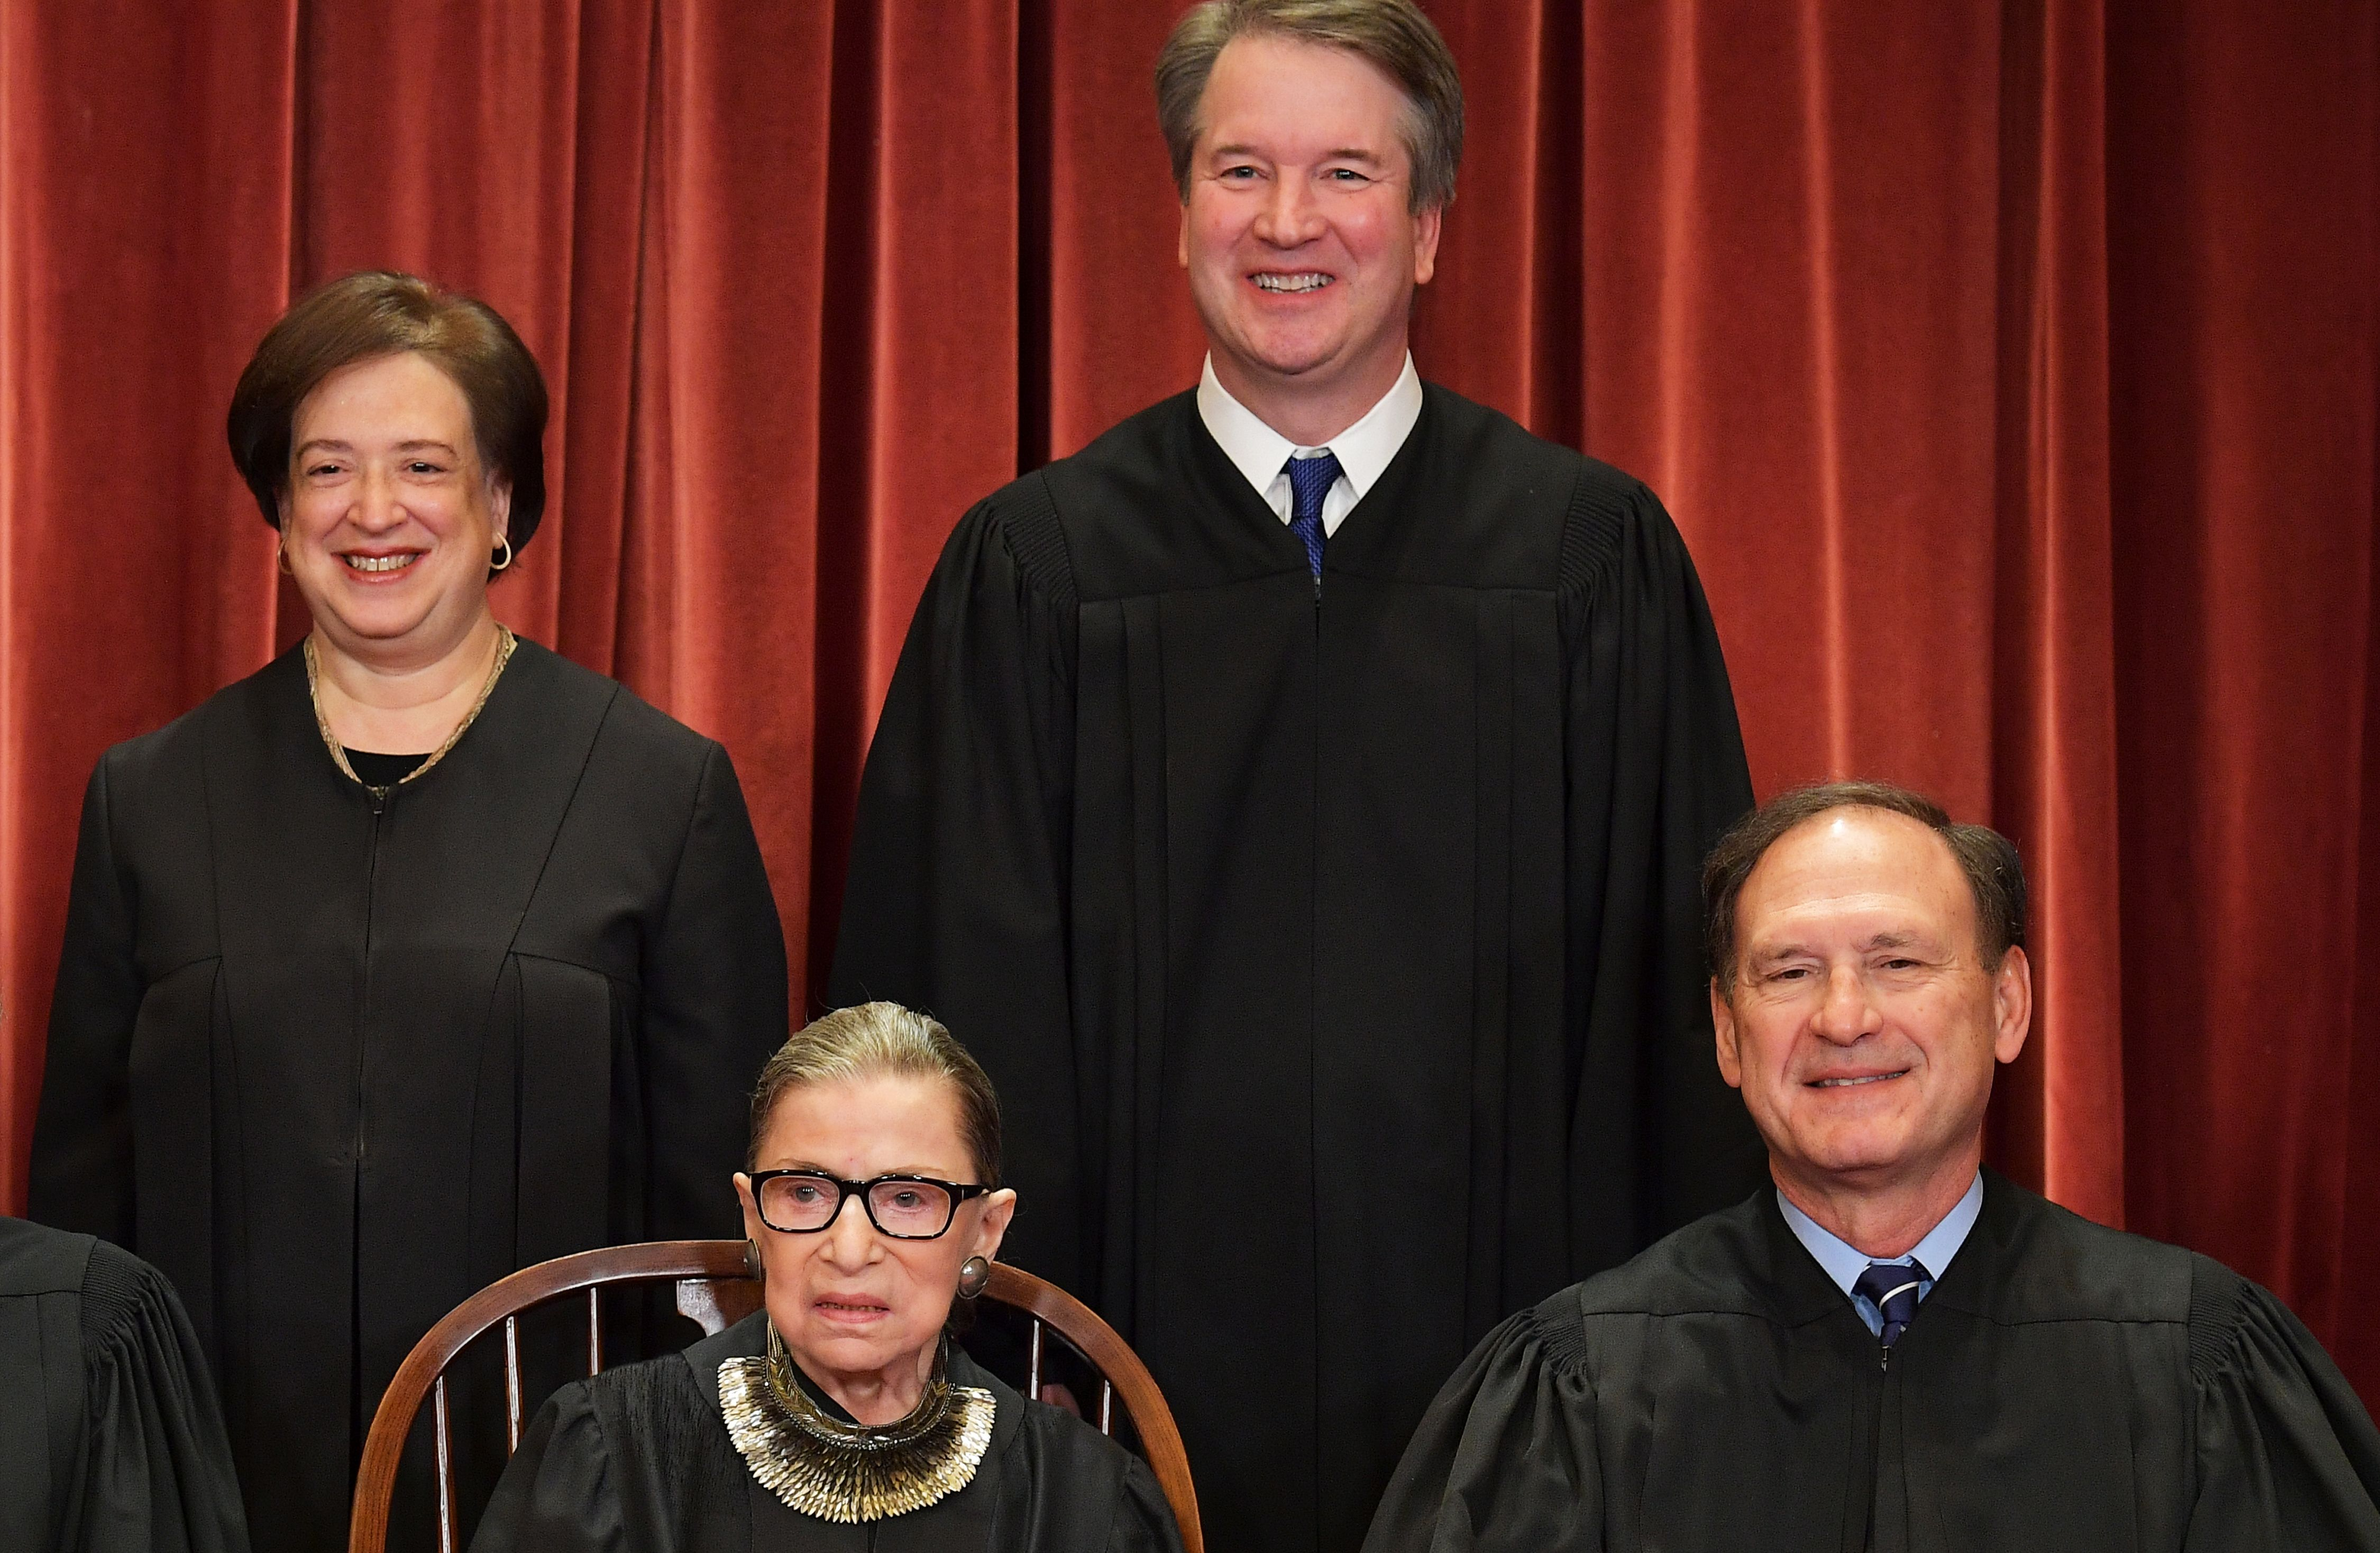 Justice Elena Kagan (L, rear), Justice Brett Kavanaugh (C, rear), Justice Ruth Bader Ginsburg (C, front) and Justice Samuel Alito pose for the Supreme Court official group photo on November 30, 2018. (Mandel Ngan/AFP/Getty Images)